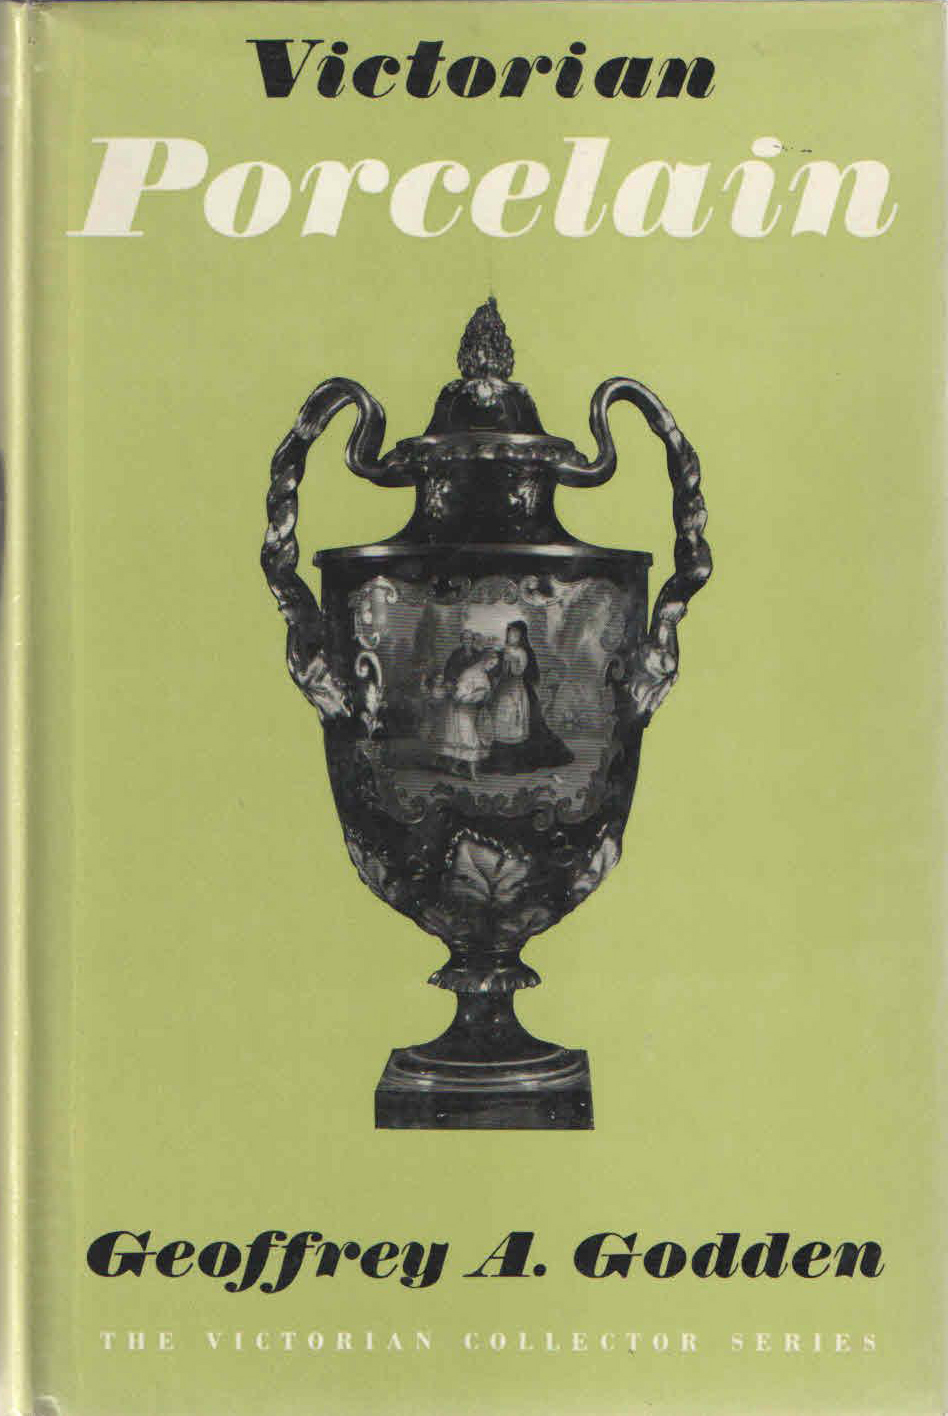 Victorian Porcelain (Victorian Collector Series) (image)